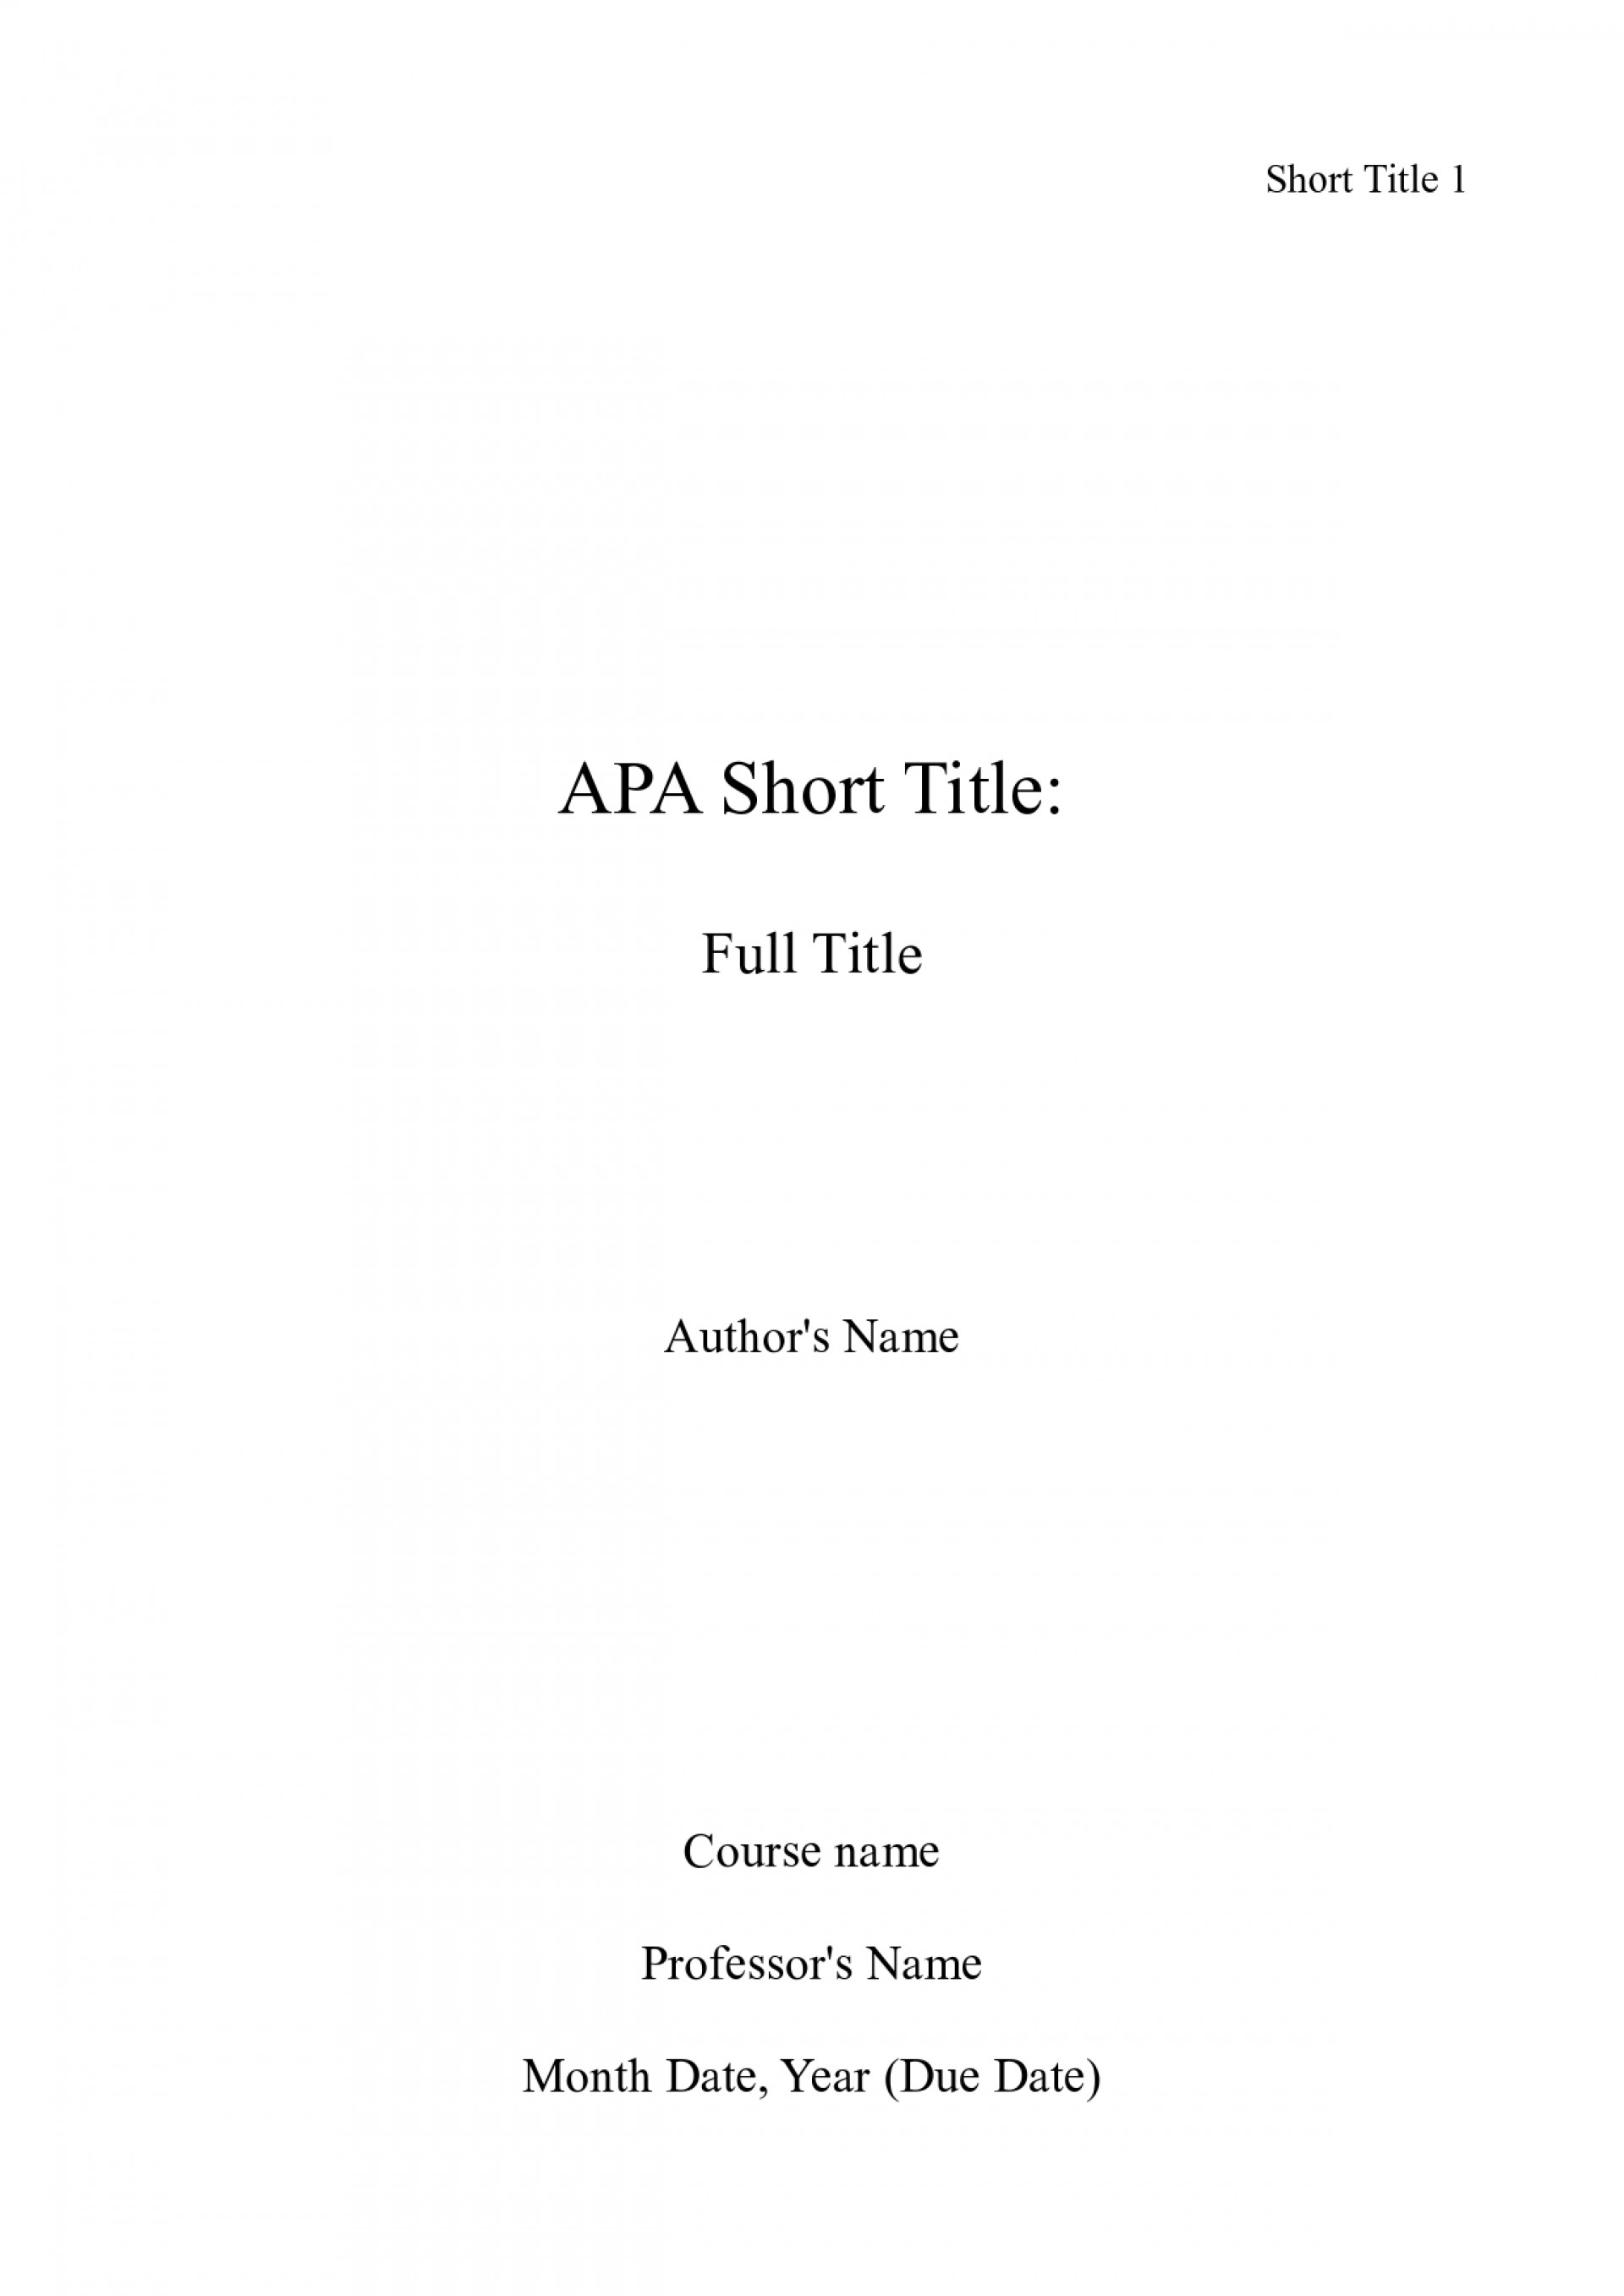 001 Essay Example How To Write Cover Page For An Apa Title Awesome A Contents Reference Mla Bibliography 1920